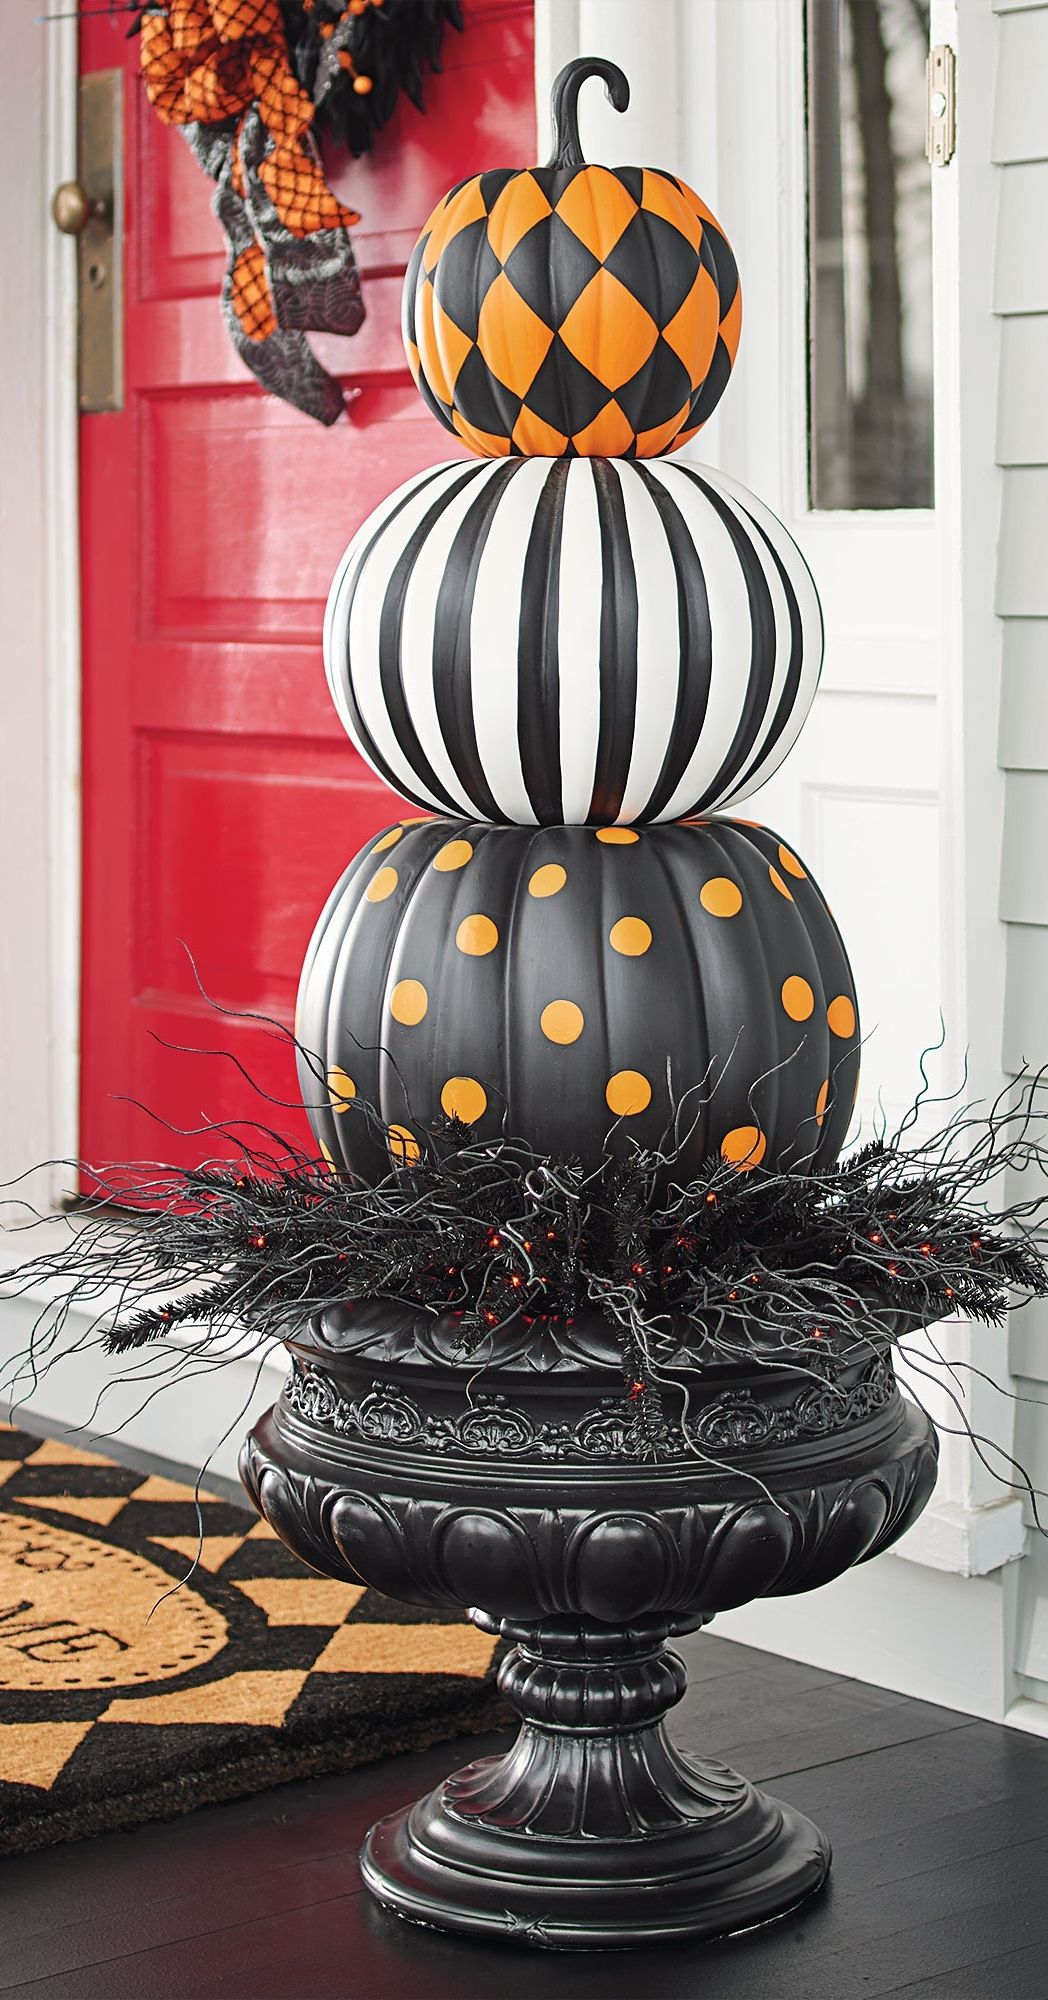 put a designer spin on decorating with gourds our halloween stacked pumpkins are both witty - Pumpkins Decorations